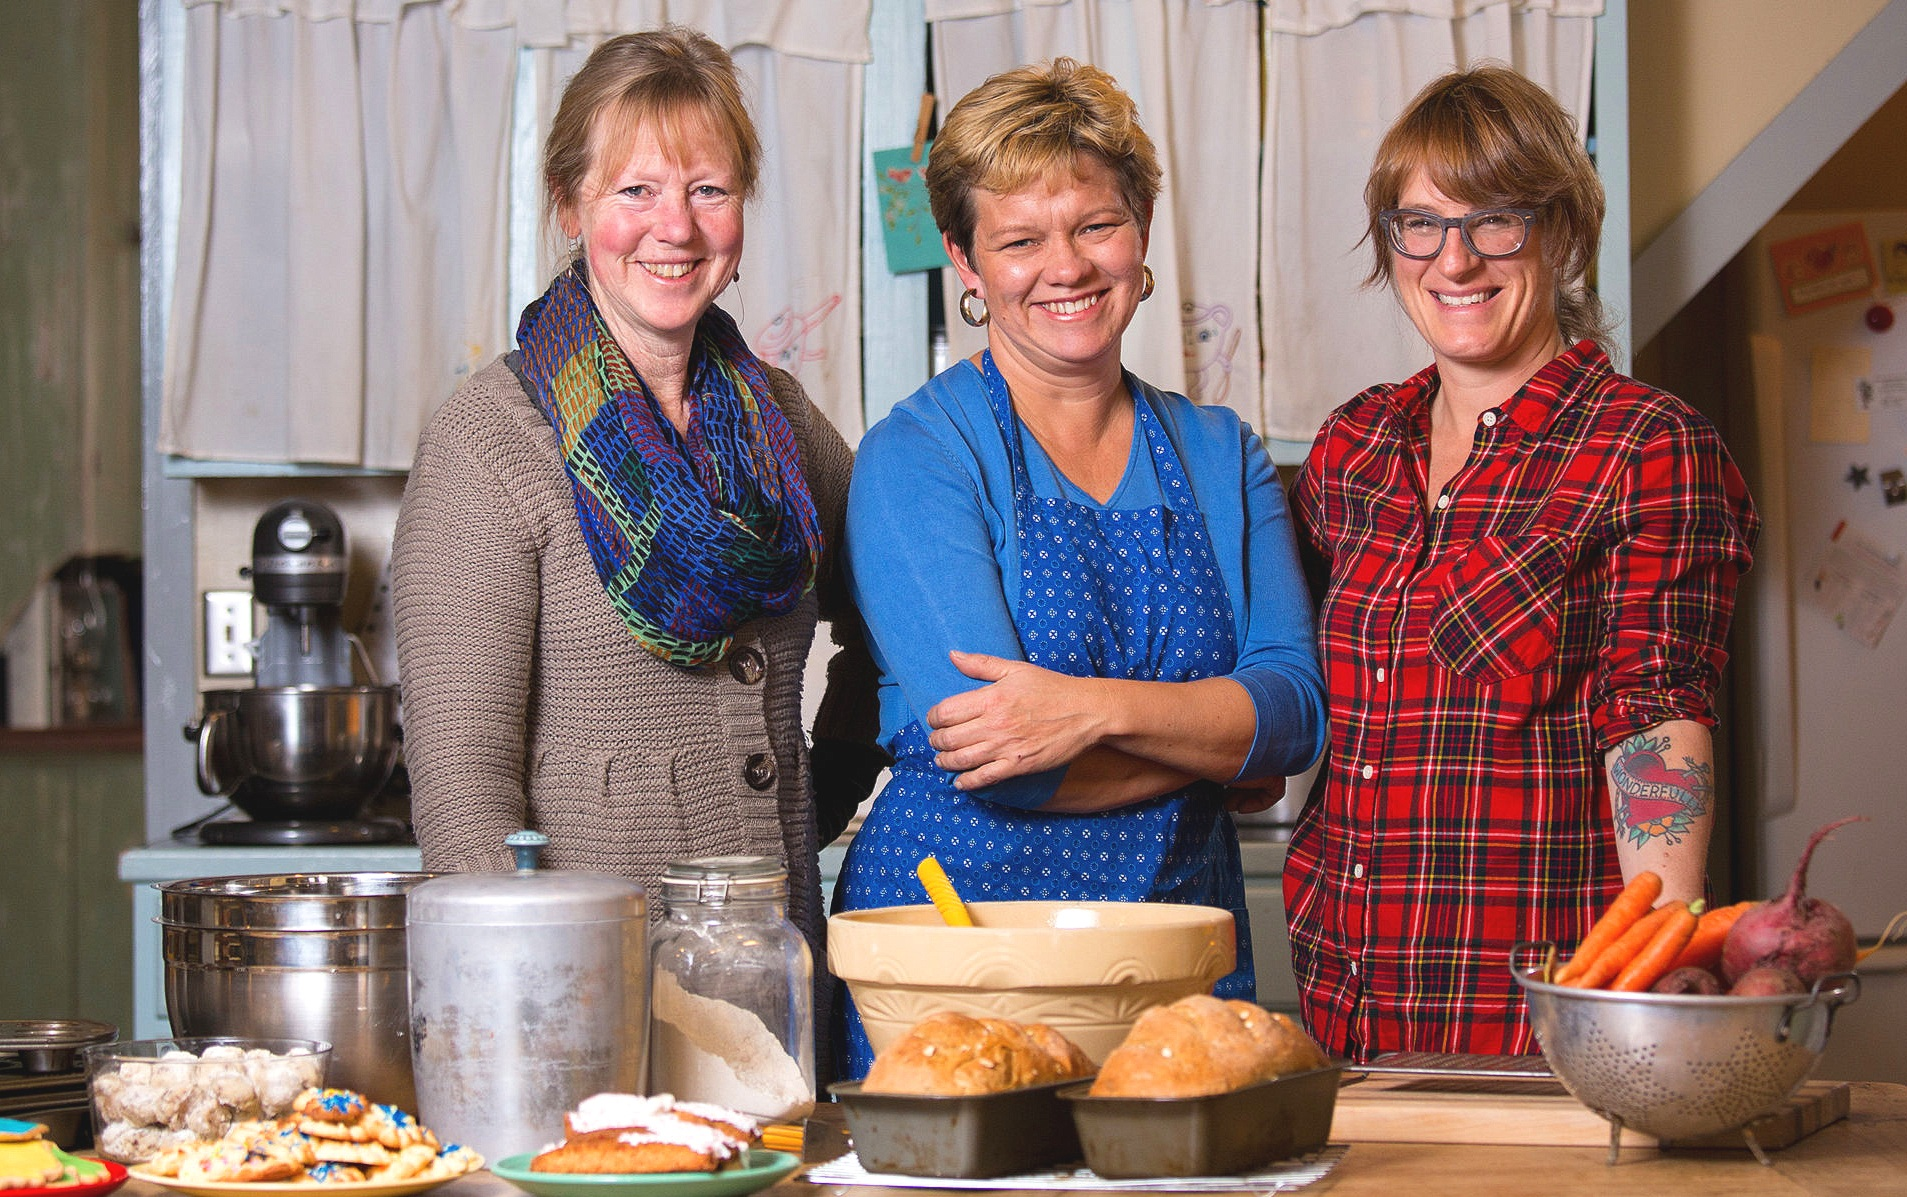 (l to r) Dela Ends, Lisa Kivirist, Kriss Marion—Soil Sisters and winning plaintiffs in the 2017 Wisconsin ruling that repealed the state ban on the sale of home-baked goods.  (Photo copyright Institute for Justice.)